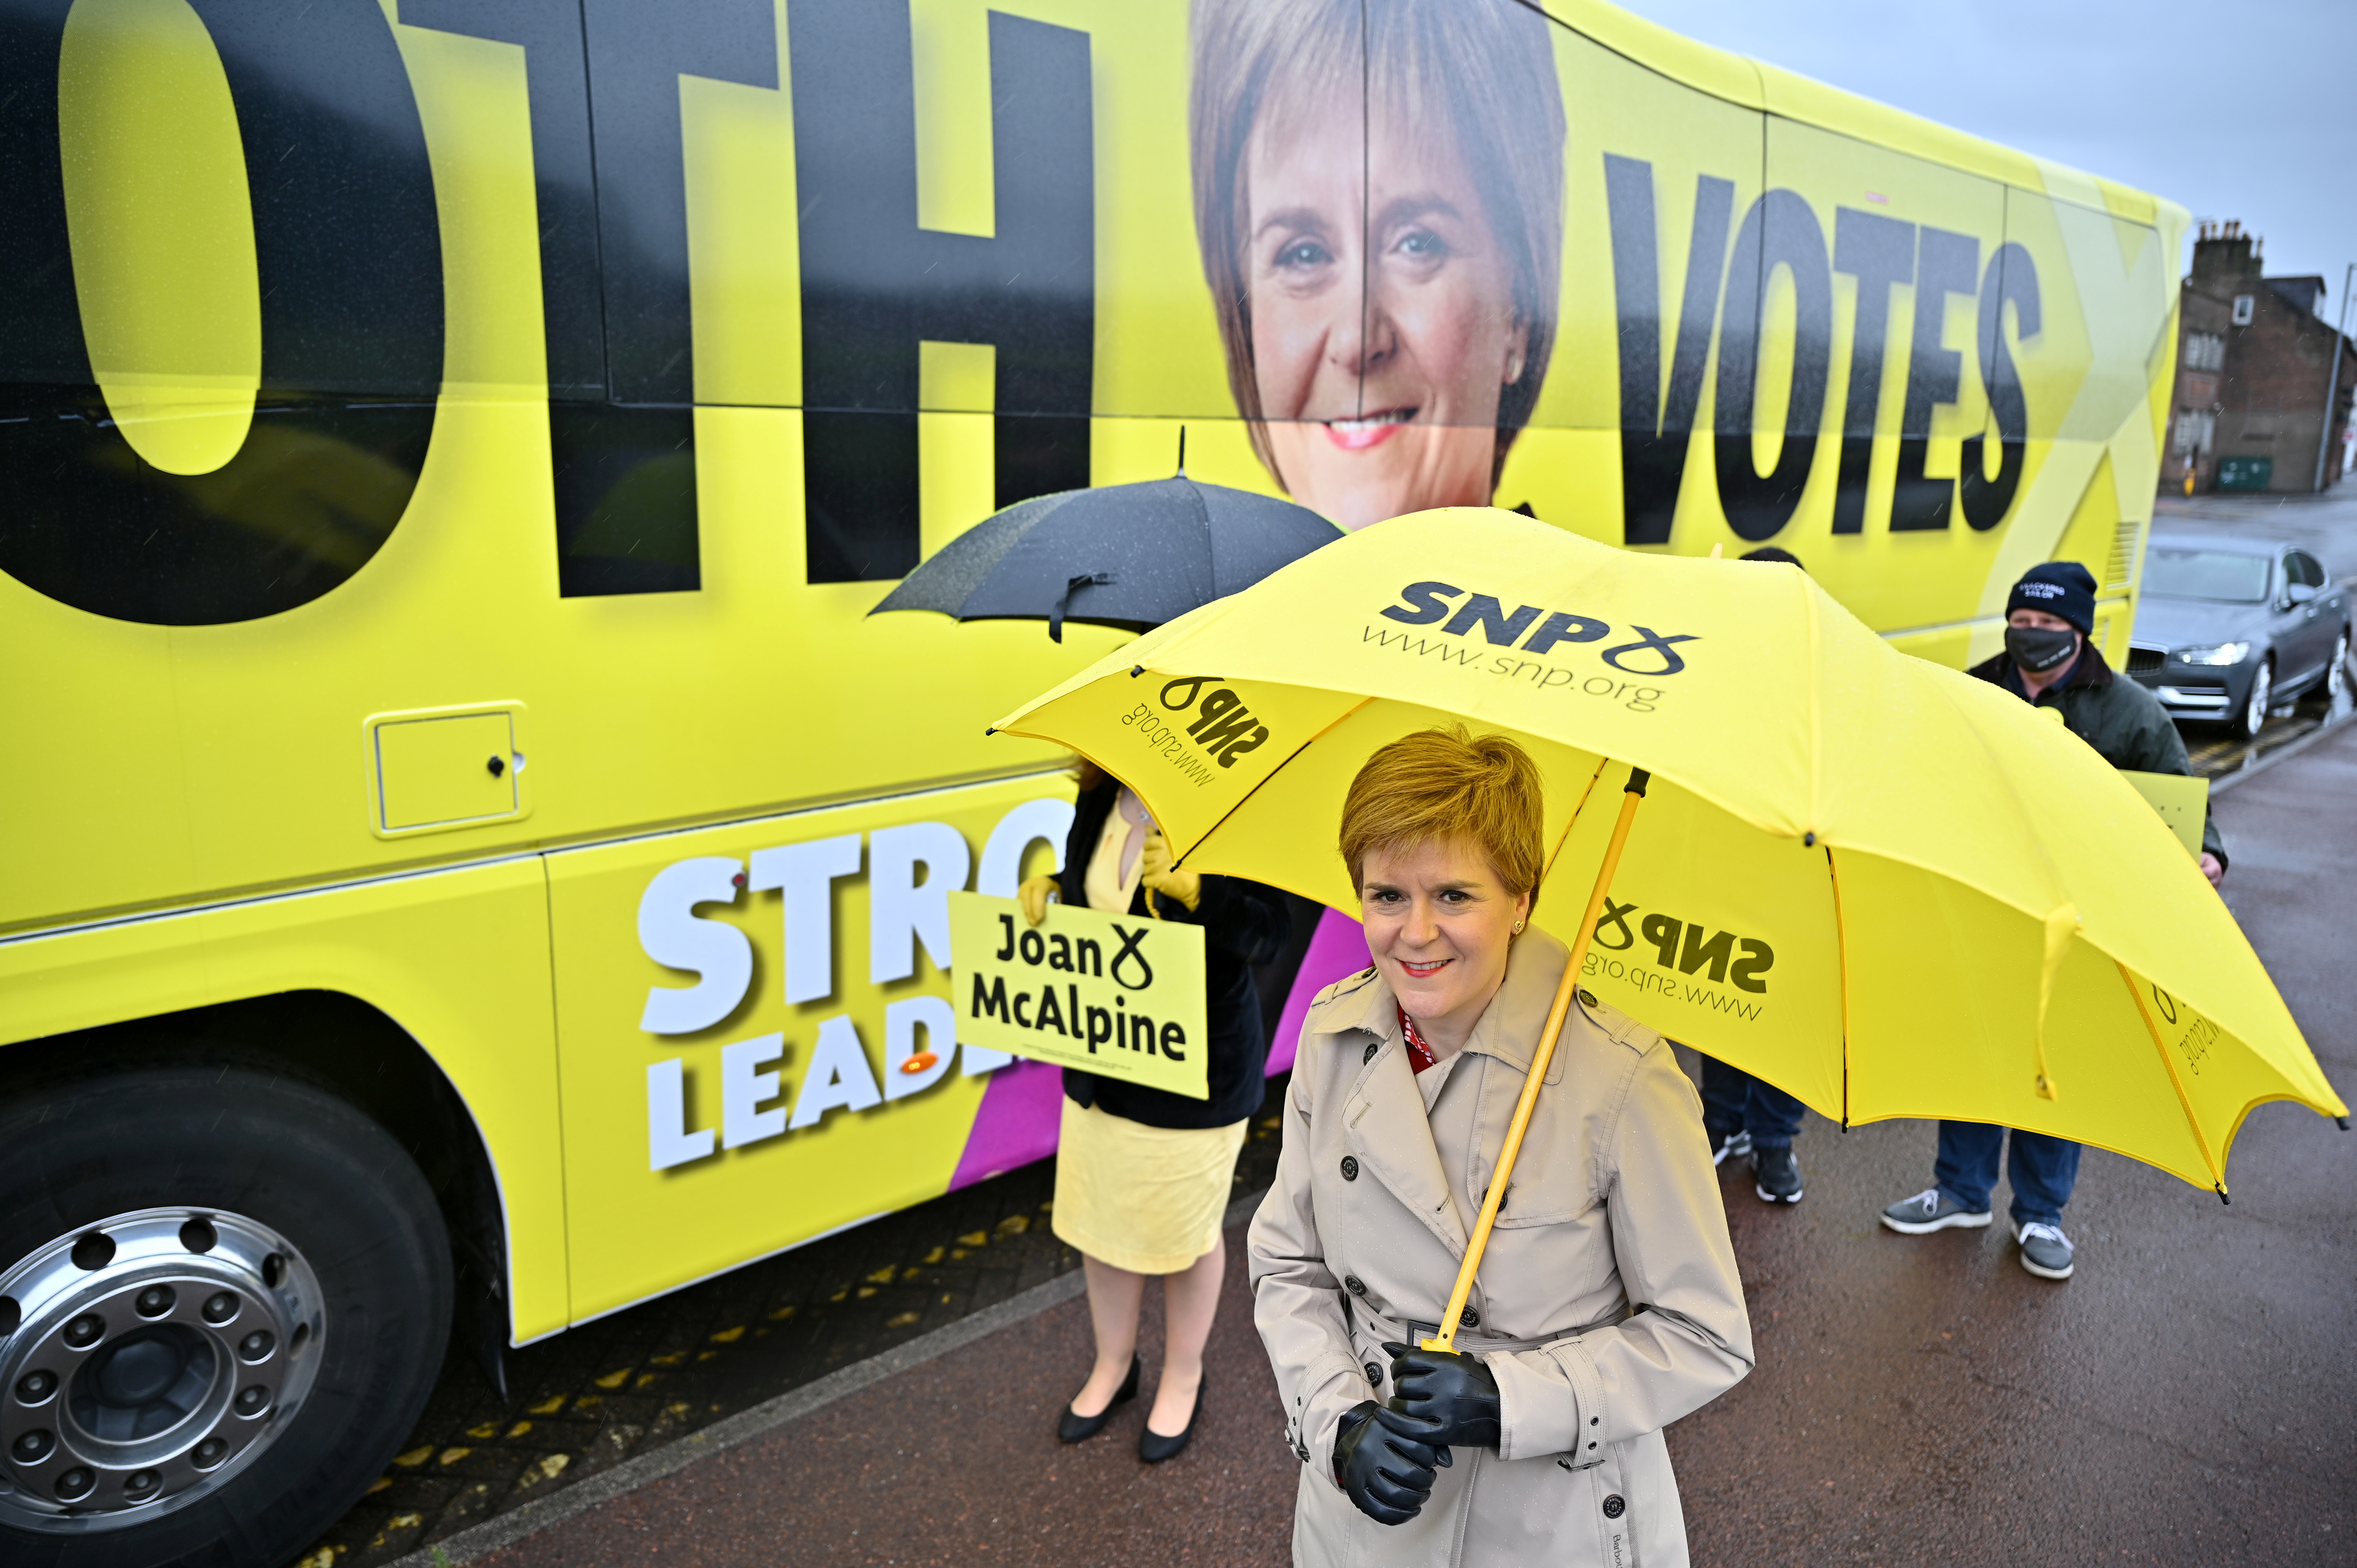 Scotland's First Minister Nicola Sturgeon campaigns in Midsteeple Quarter for the Scottish Parliament election, in Dumfries, Scotland, Britain May 3, 2021.  Jeff J Mitchell/Pool via REUTERS